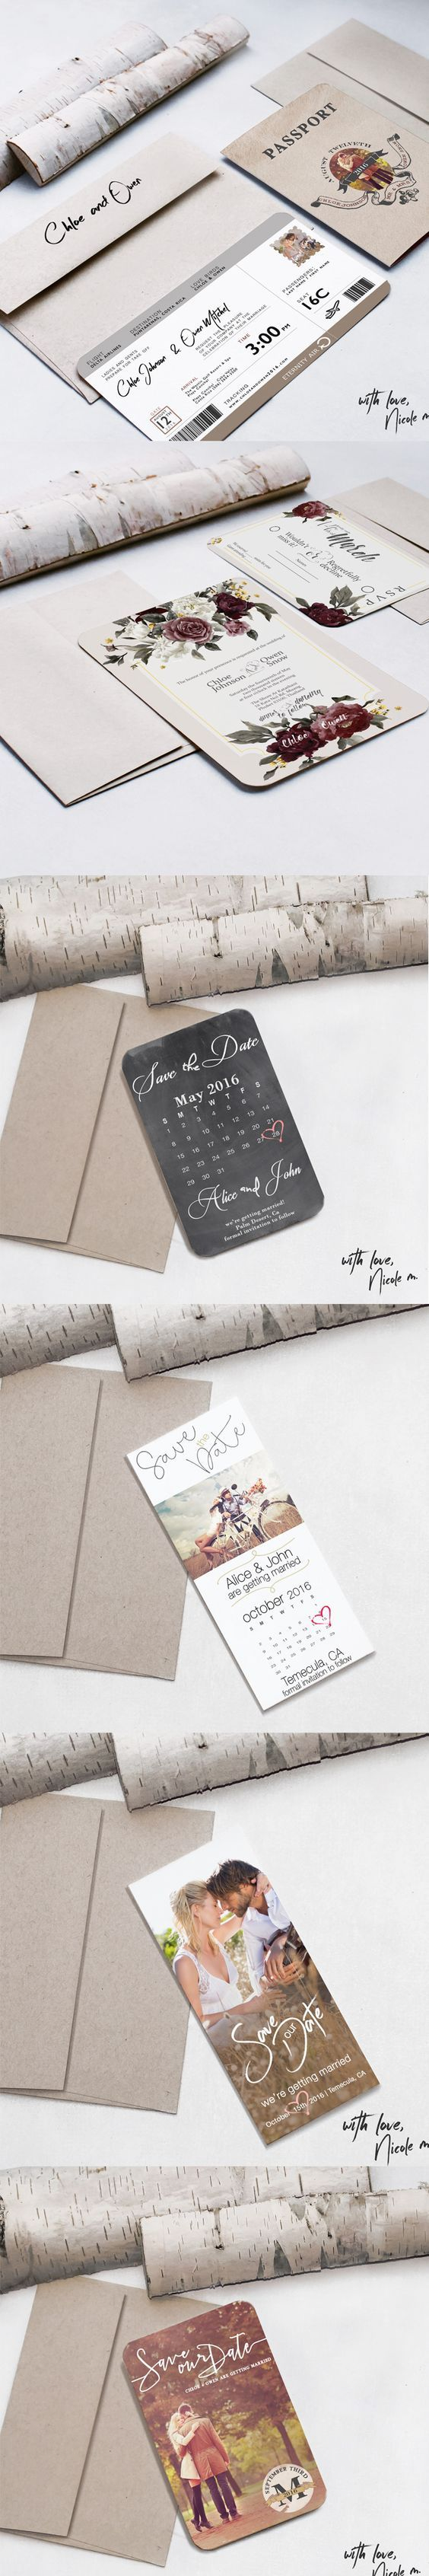 42 best Destination wedding welcome bags, swag and favors images on ...